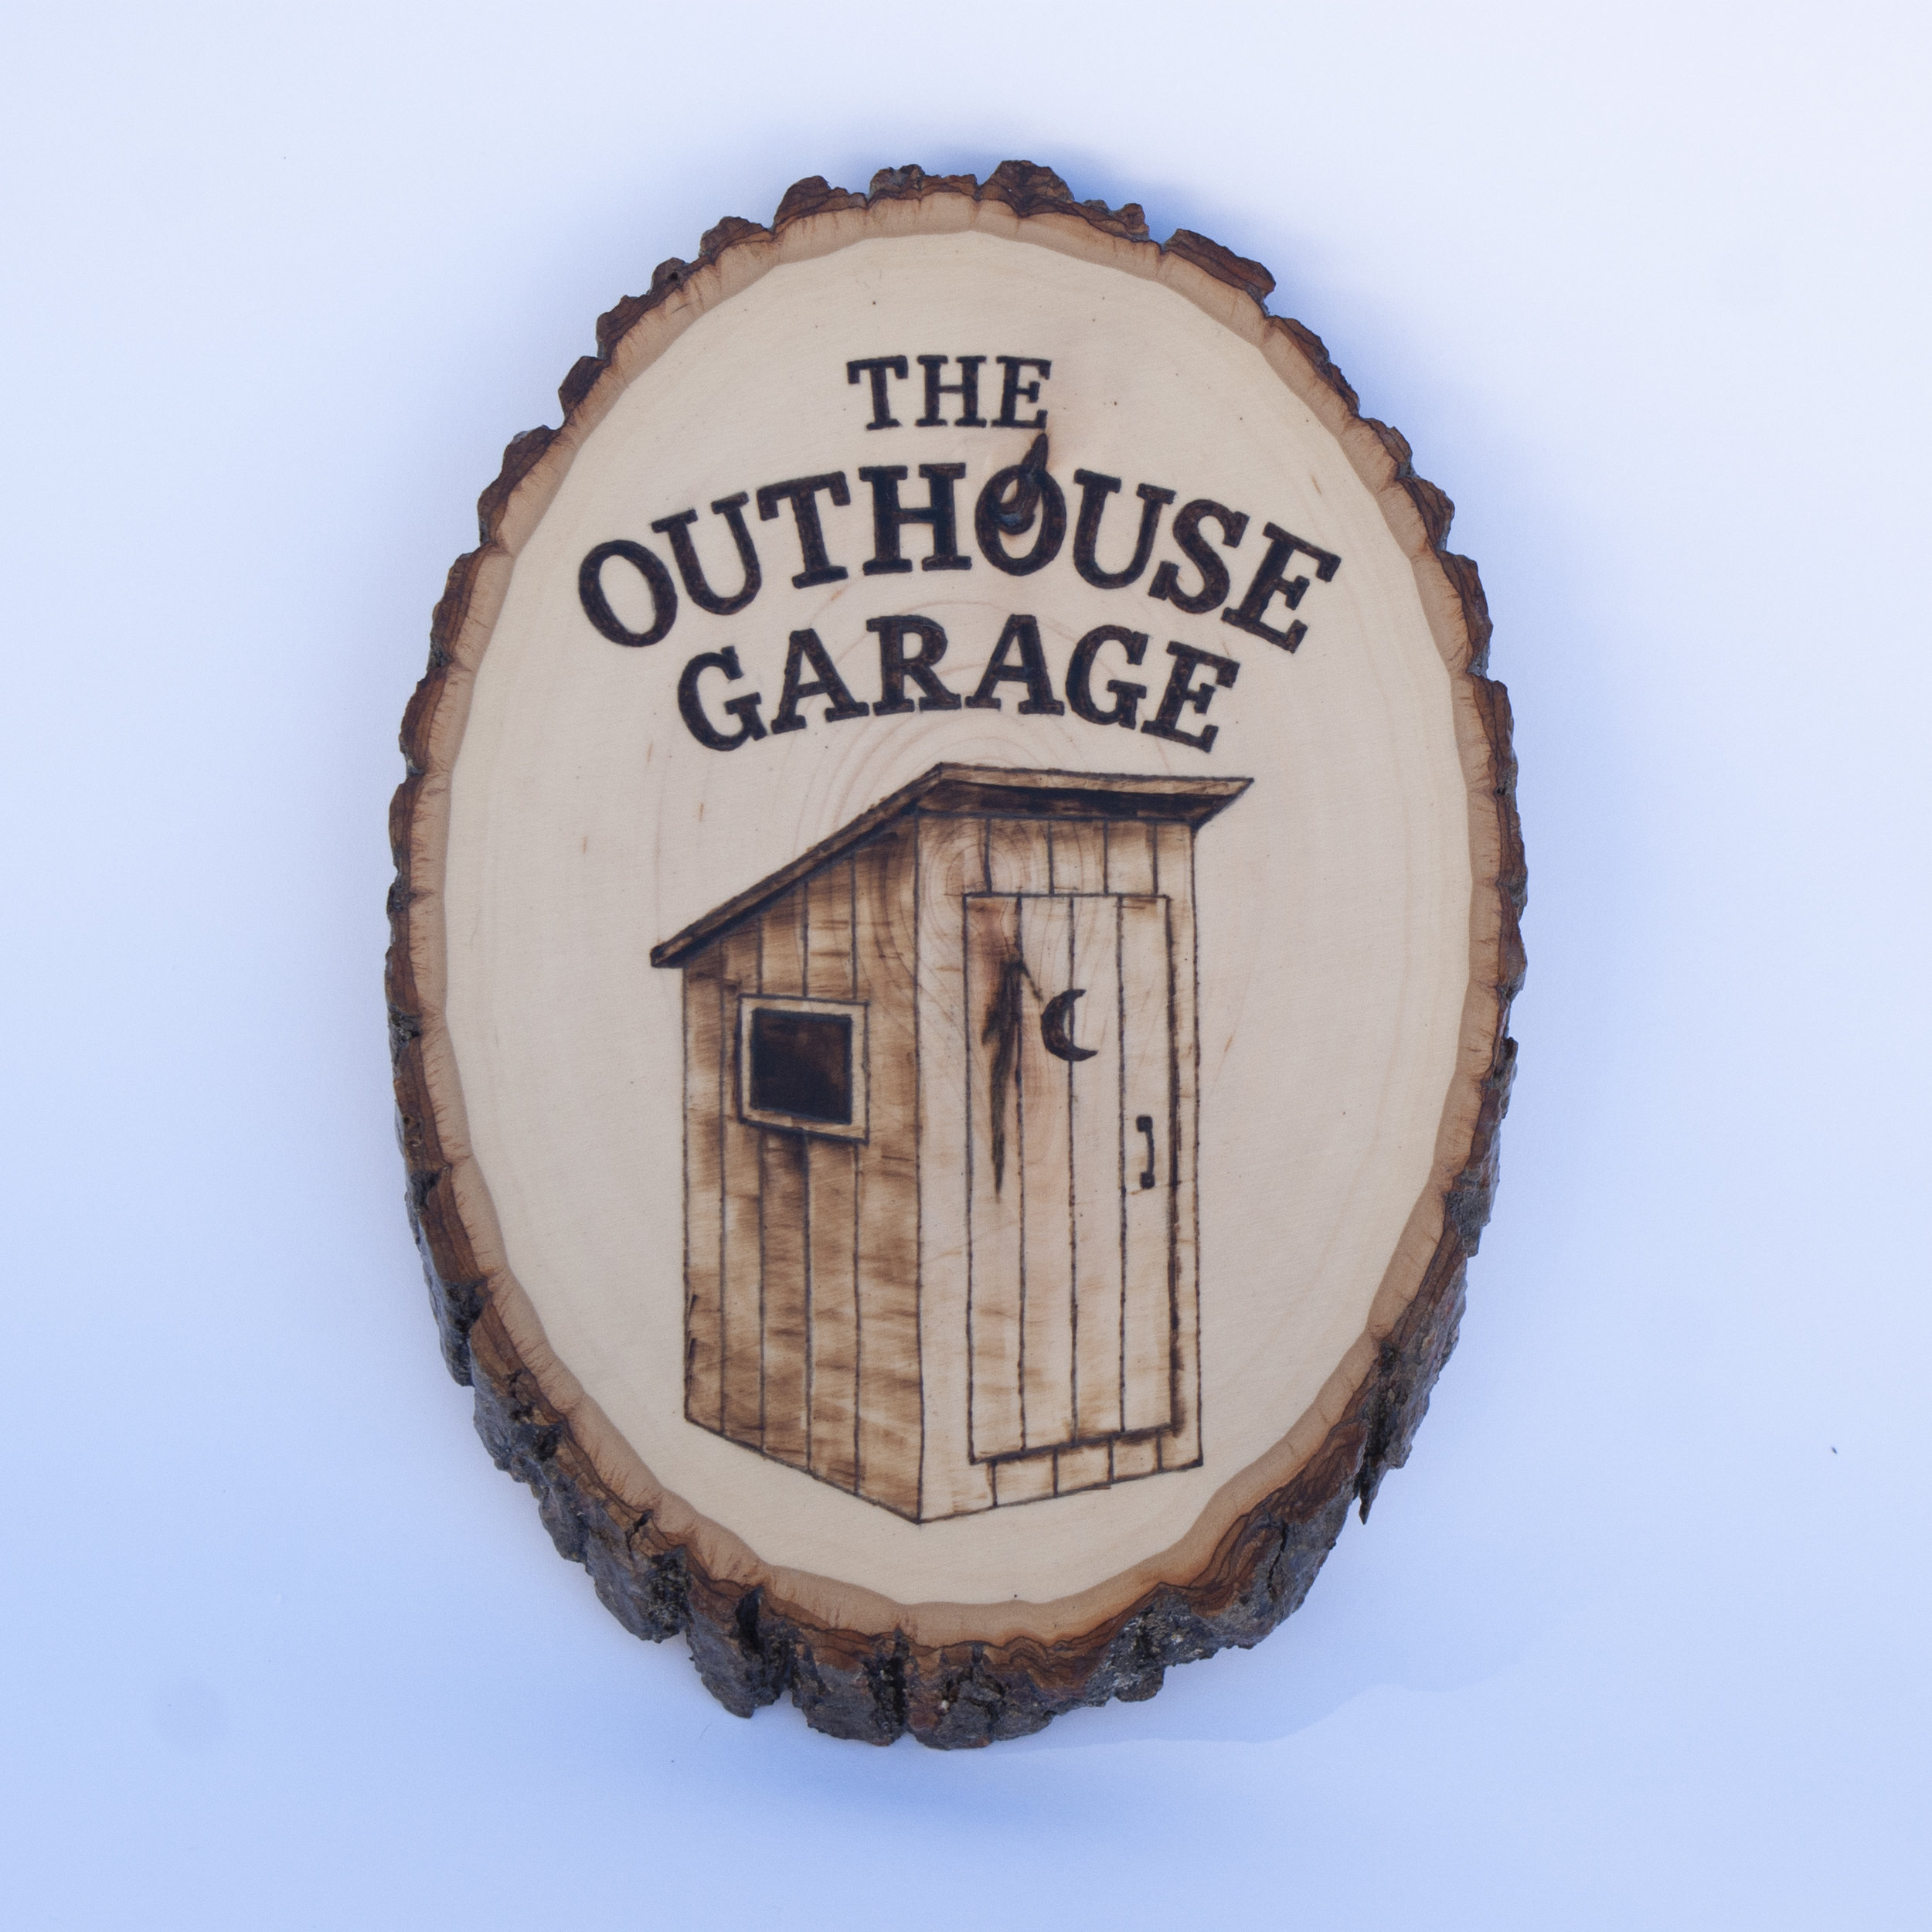 Outhouse_Garage.jpg